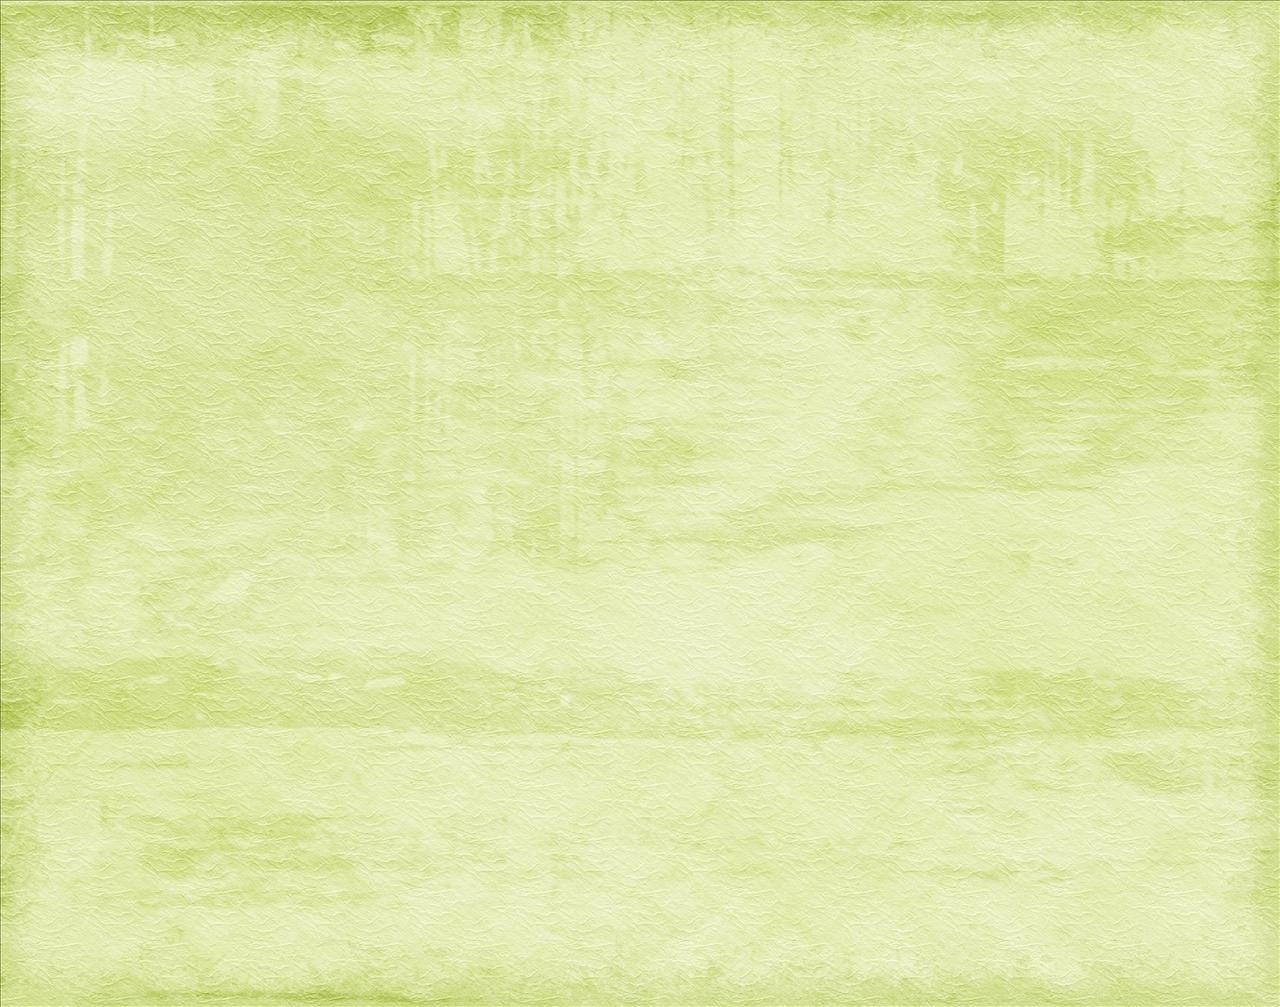 Bright Green Design Backgrounds